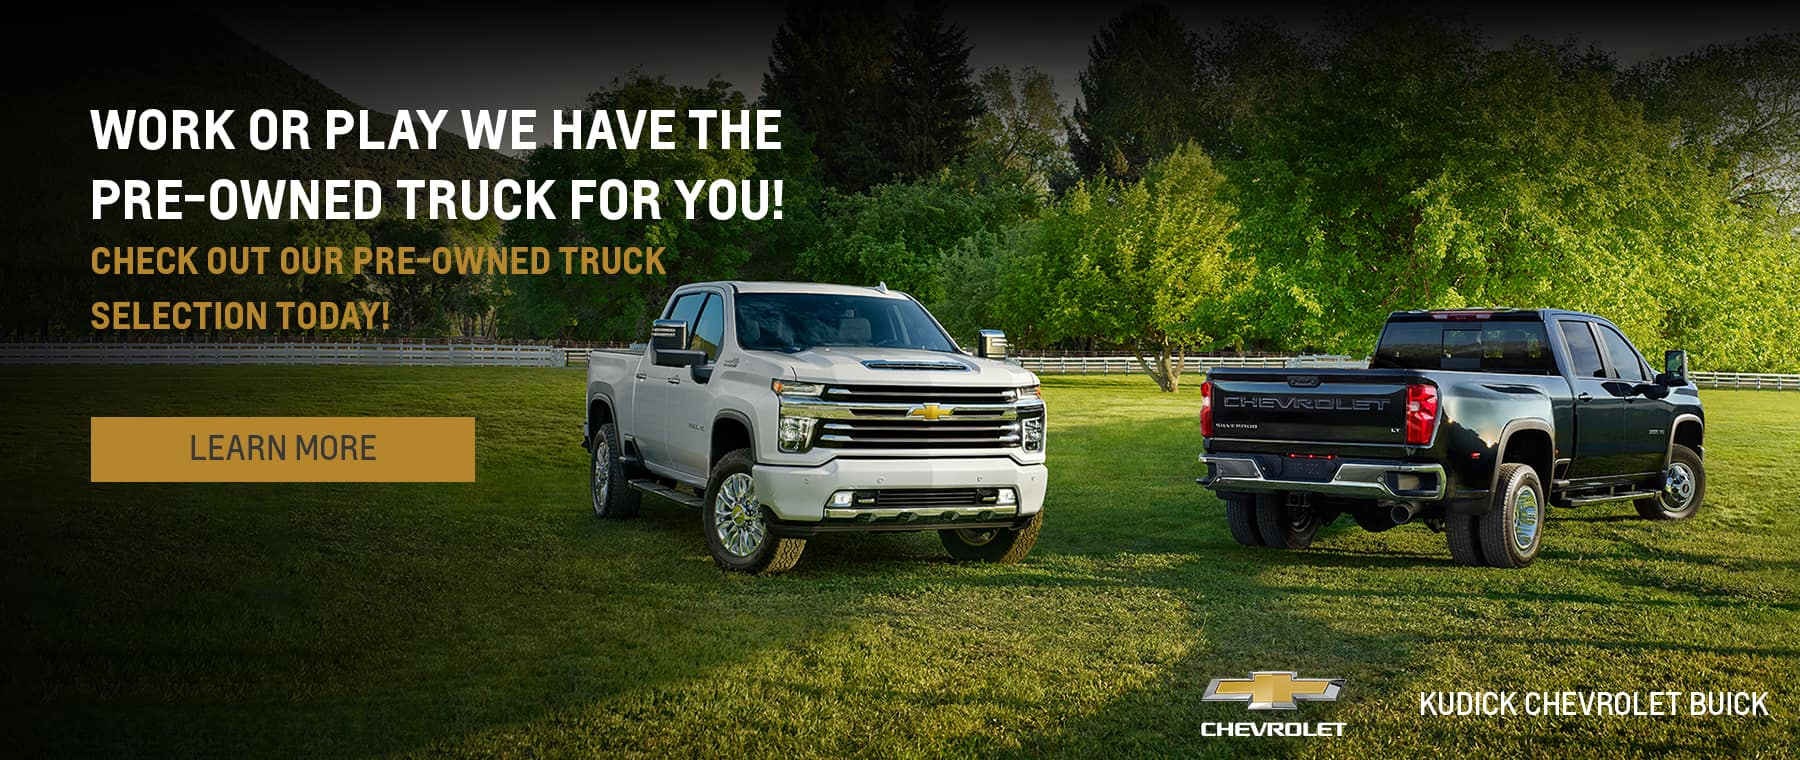 WORK OR PLAY WE HAVE THE PRE-OWNED TRUCK FOR YOU! CHECK OUT OUR PRE-OWNED TRUCK SELECTION TODAY!